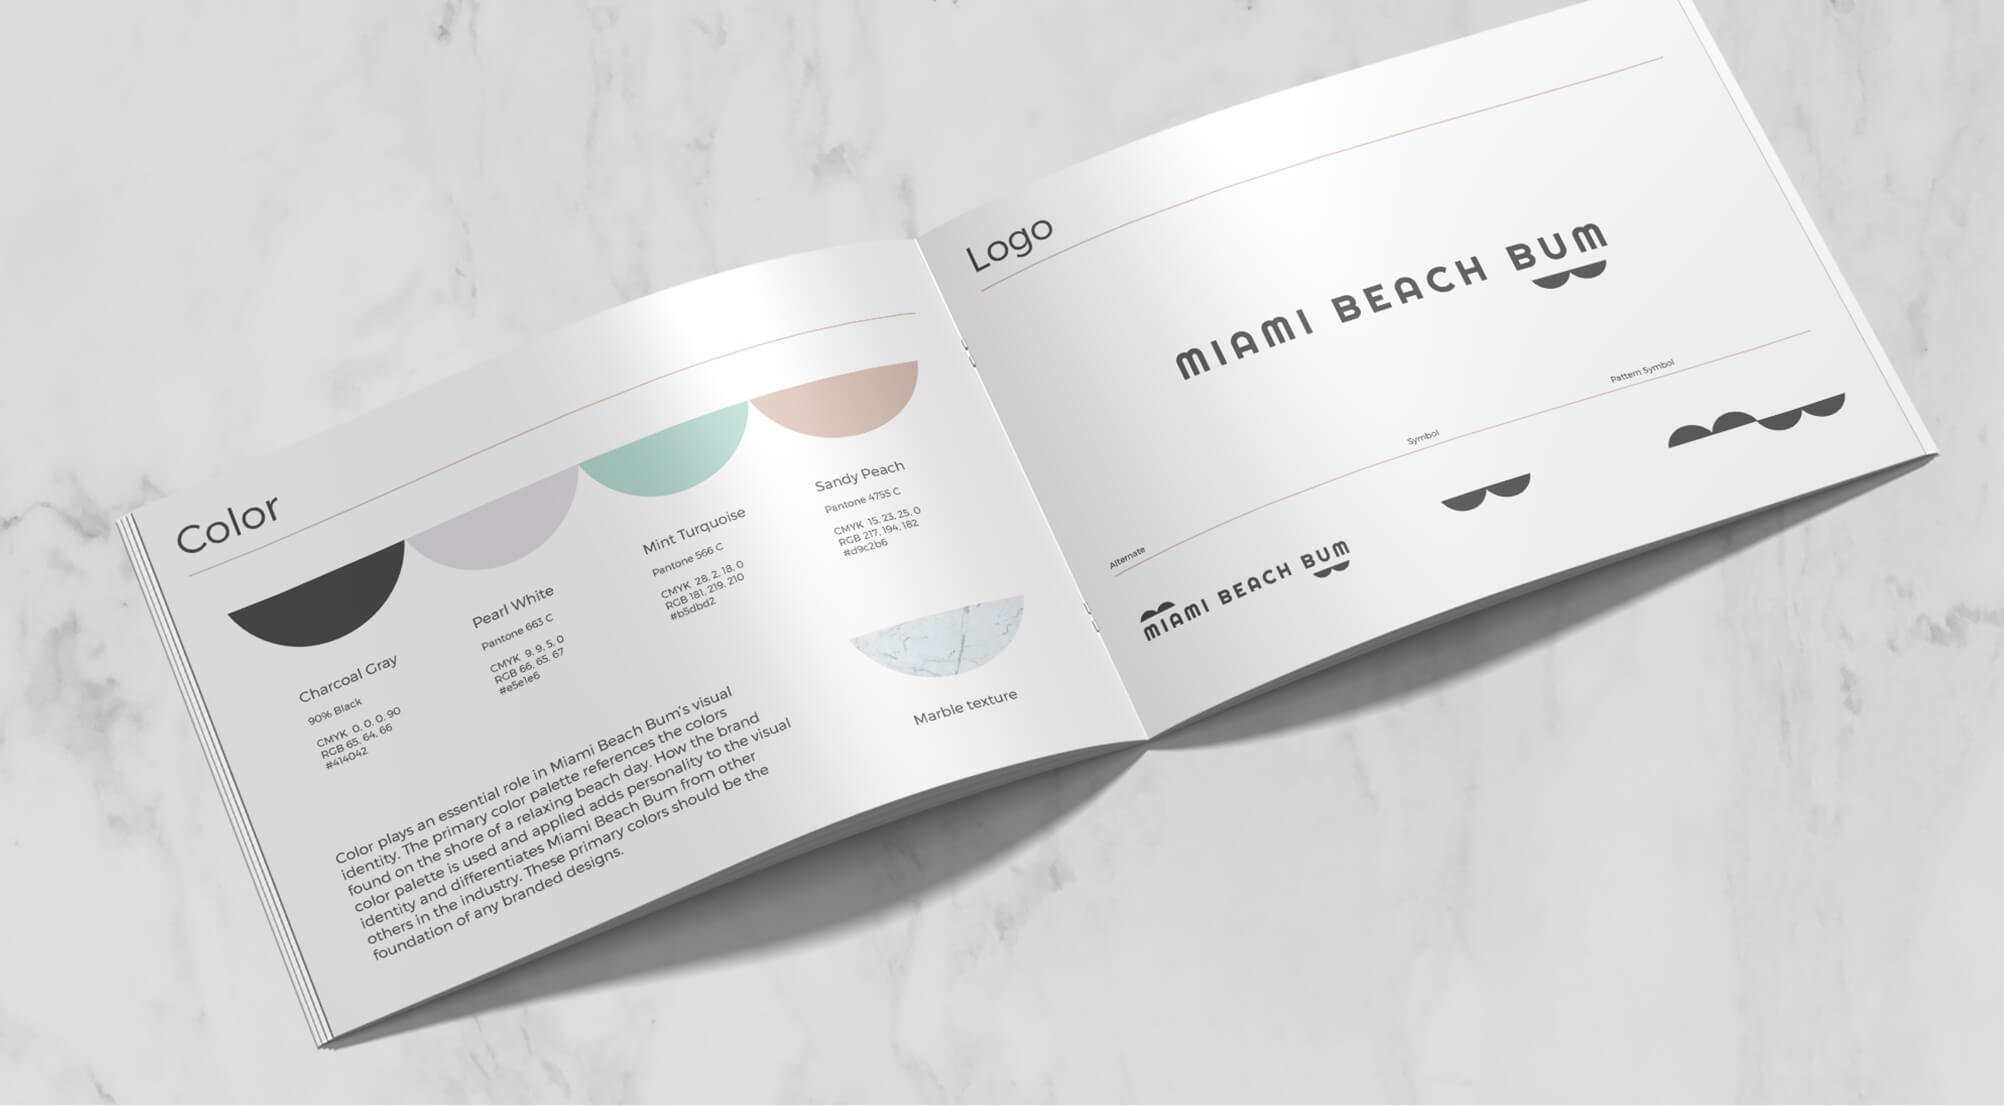 Miami Beach Bum Brand Guidelines